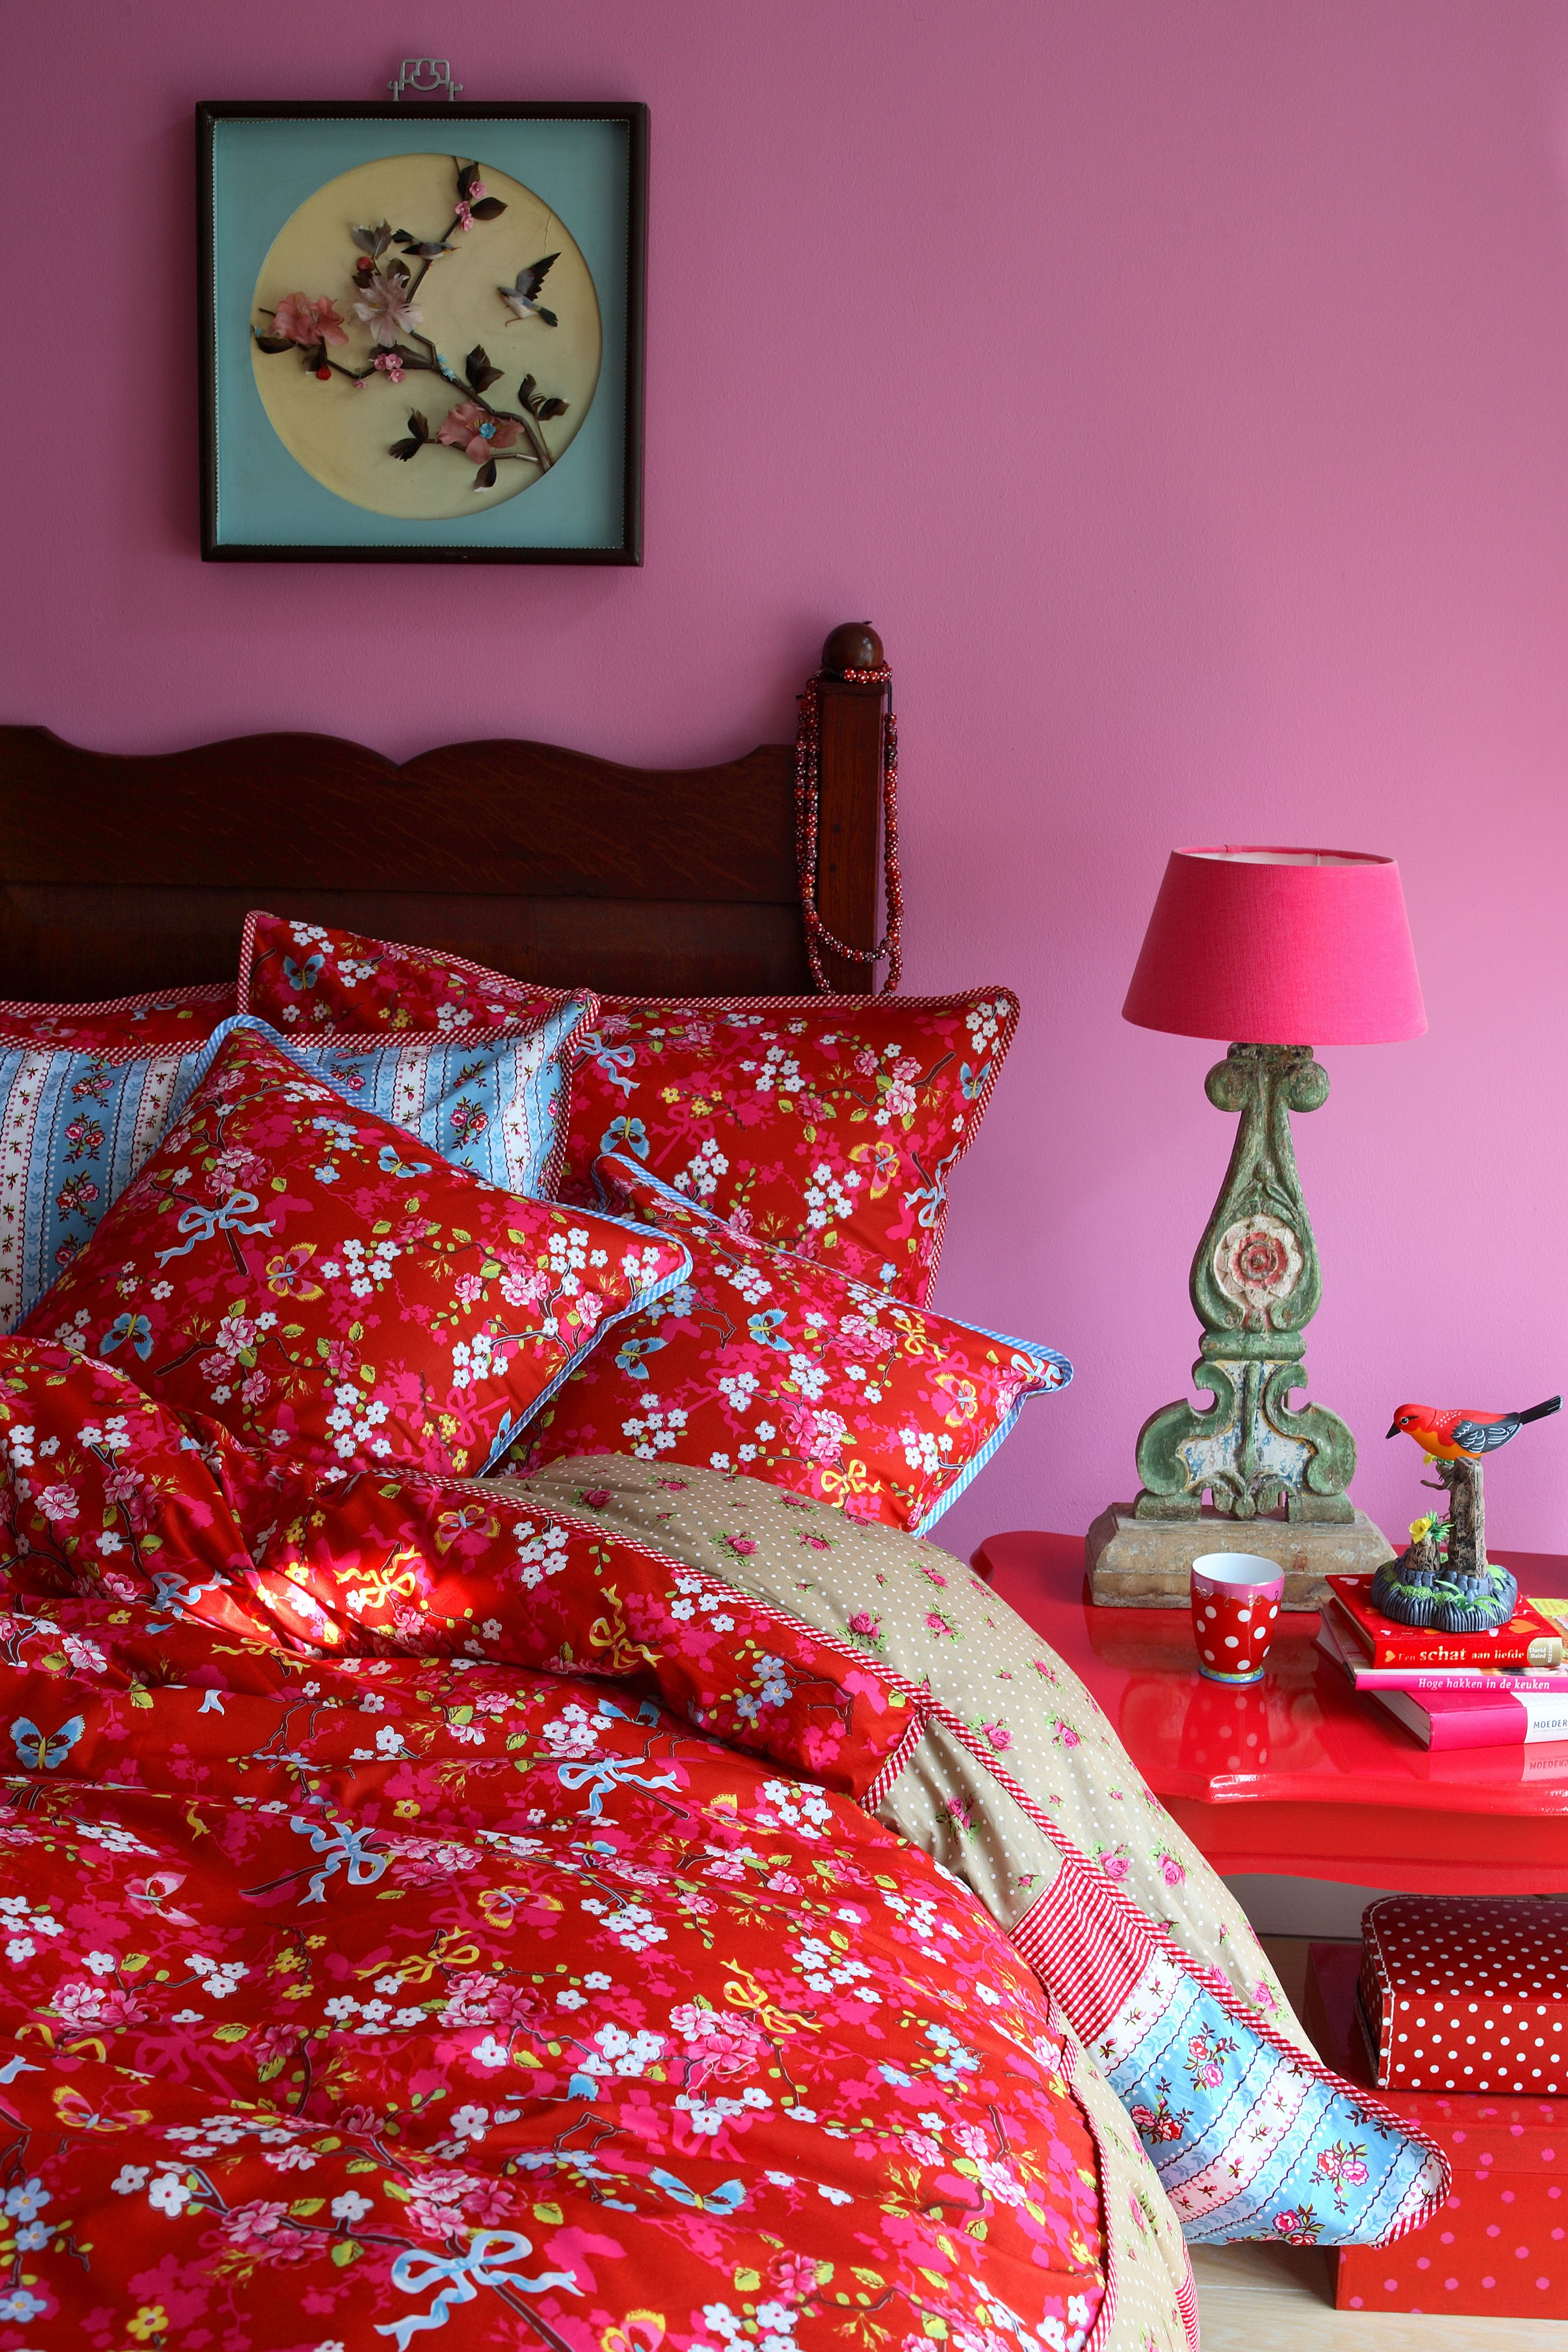 Chinese rose bedlinen sets in red